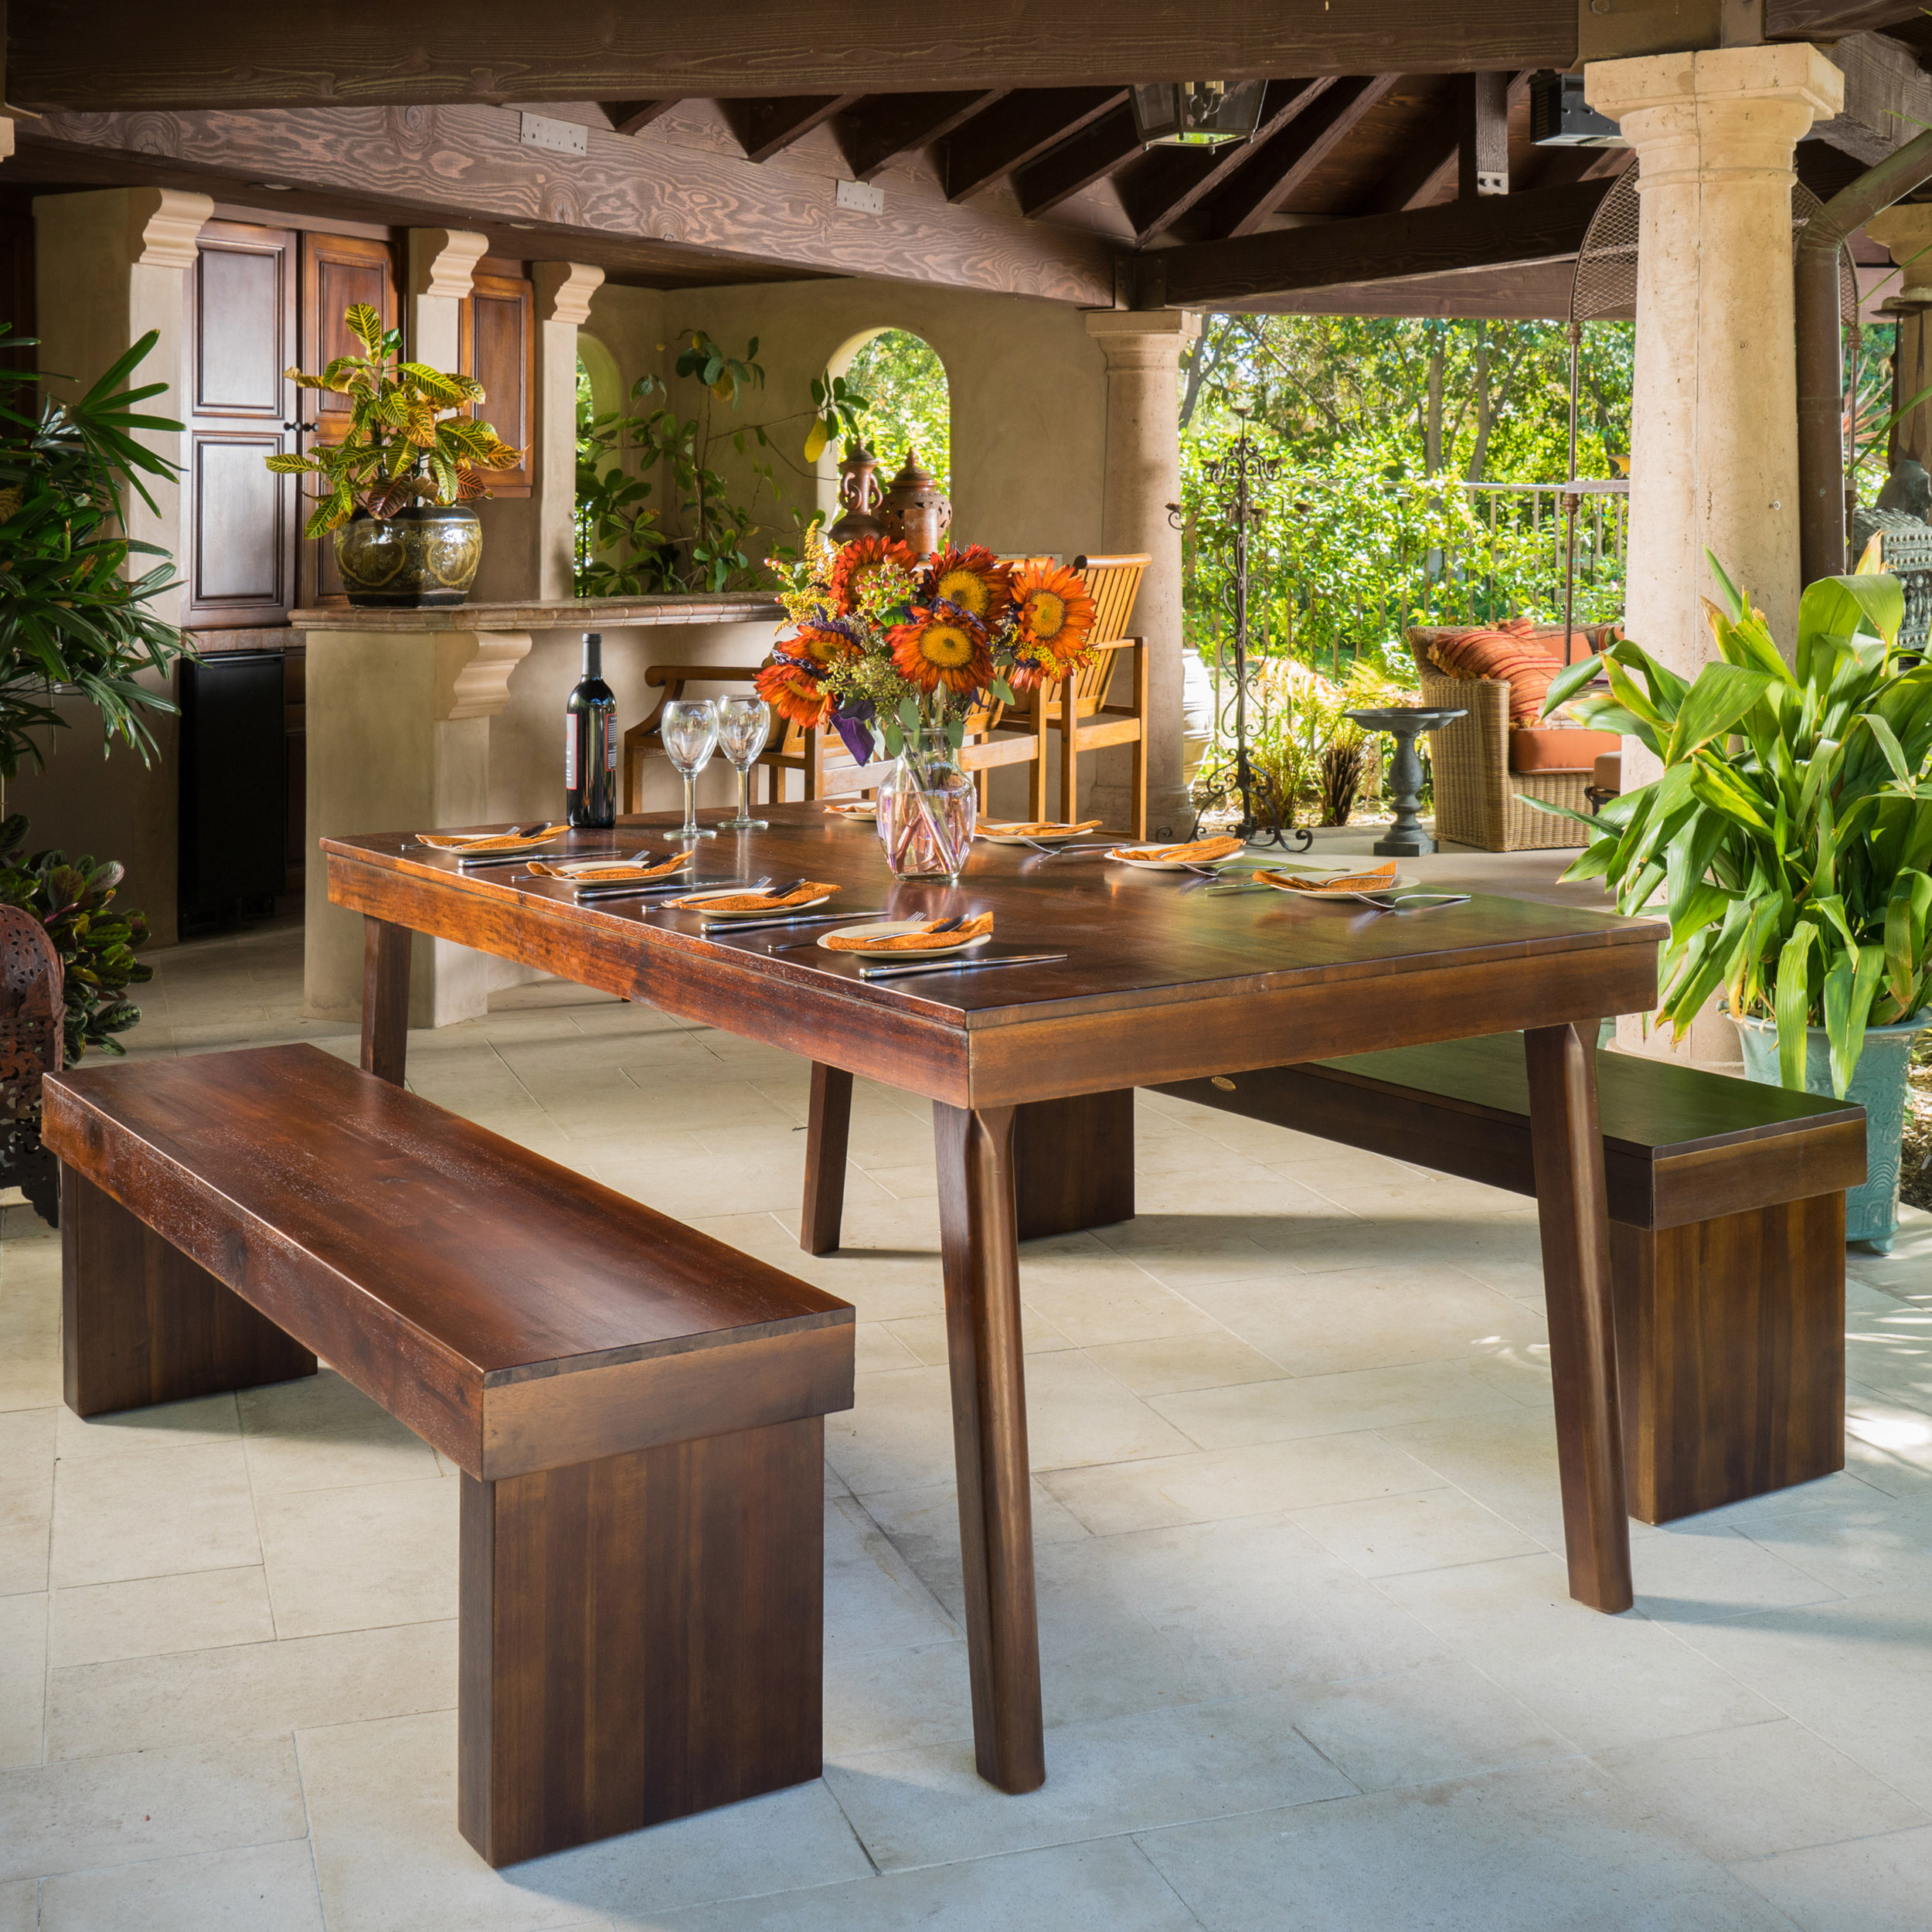 Fairway 3 Piece Wood Table and Bench Set